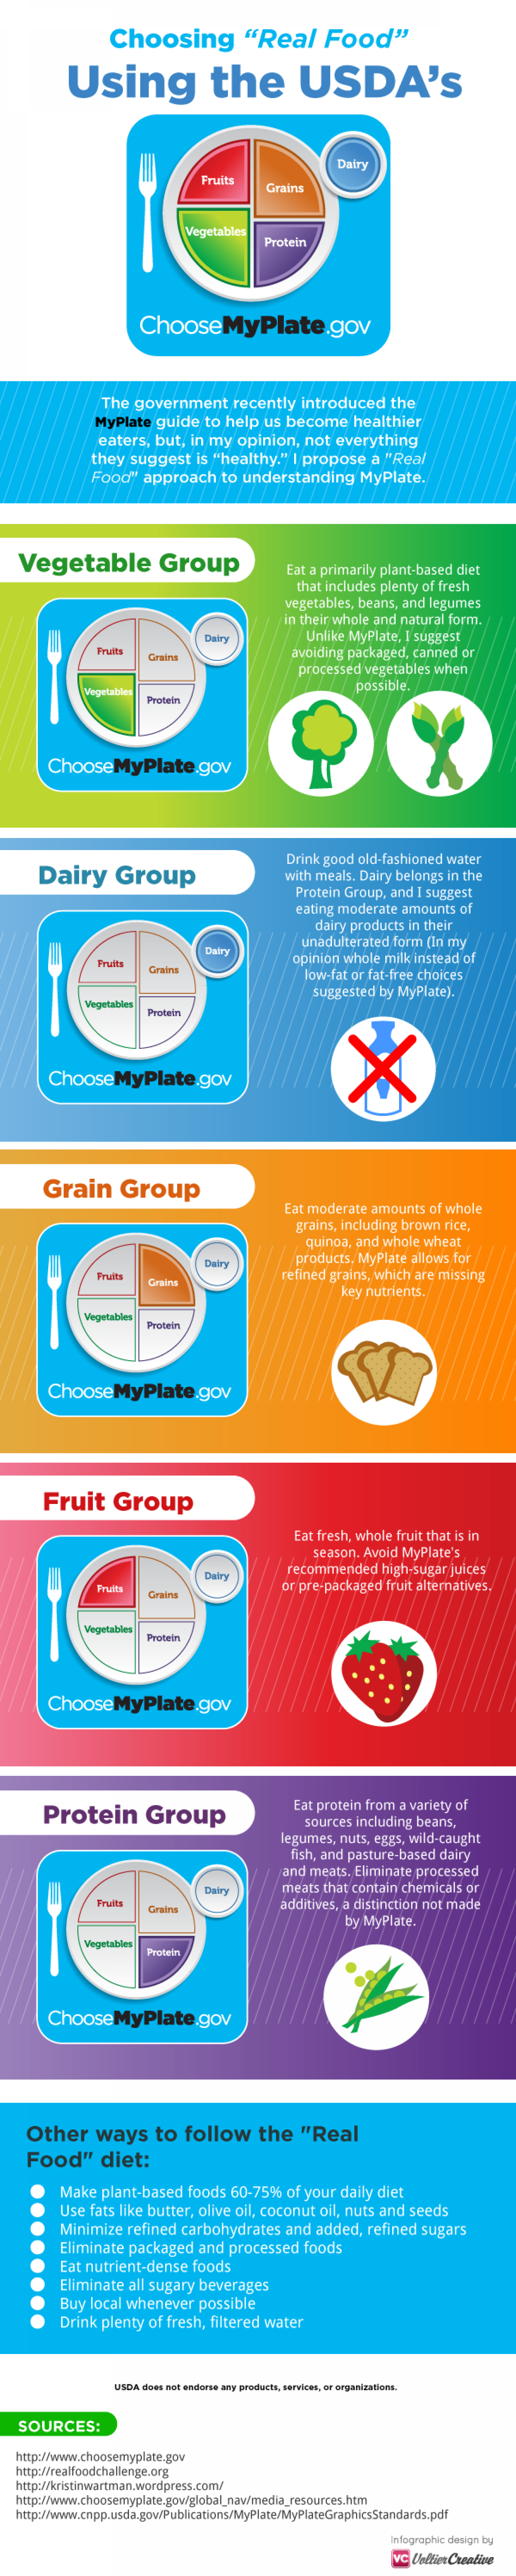 "Choosing ""Real Food' Using USDA's MyPlate.gov Infographic"